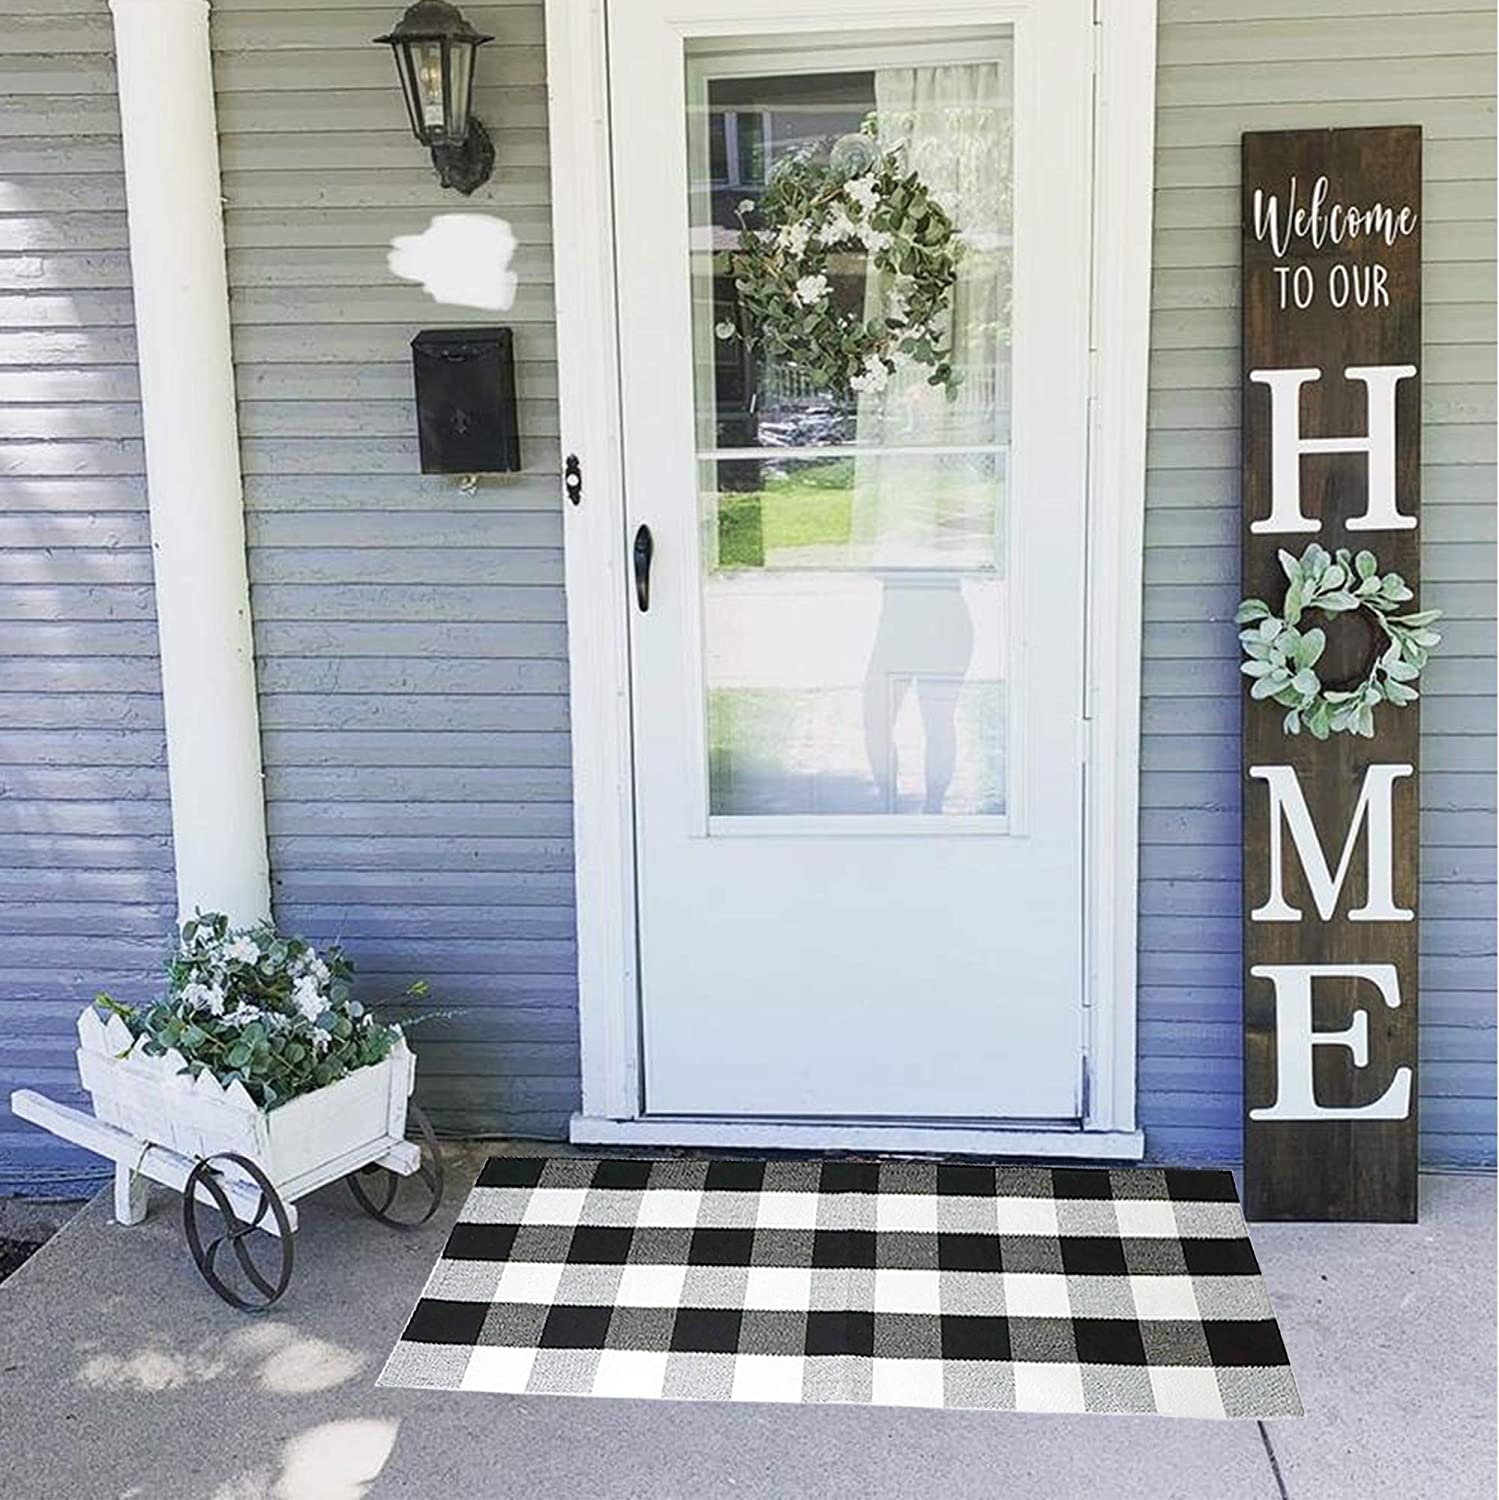 Black and White Buffalo Plaid Rug - 23.6''x51.2''Anti-Slip Mat, Outdoor/Indoor Front Porch Check Doormat, Welcome Carpet Cotton Checkered Door Mat, Kitchen Farmhouse Entryway Washable Décor